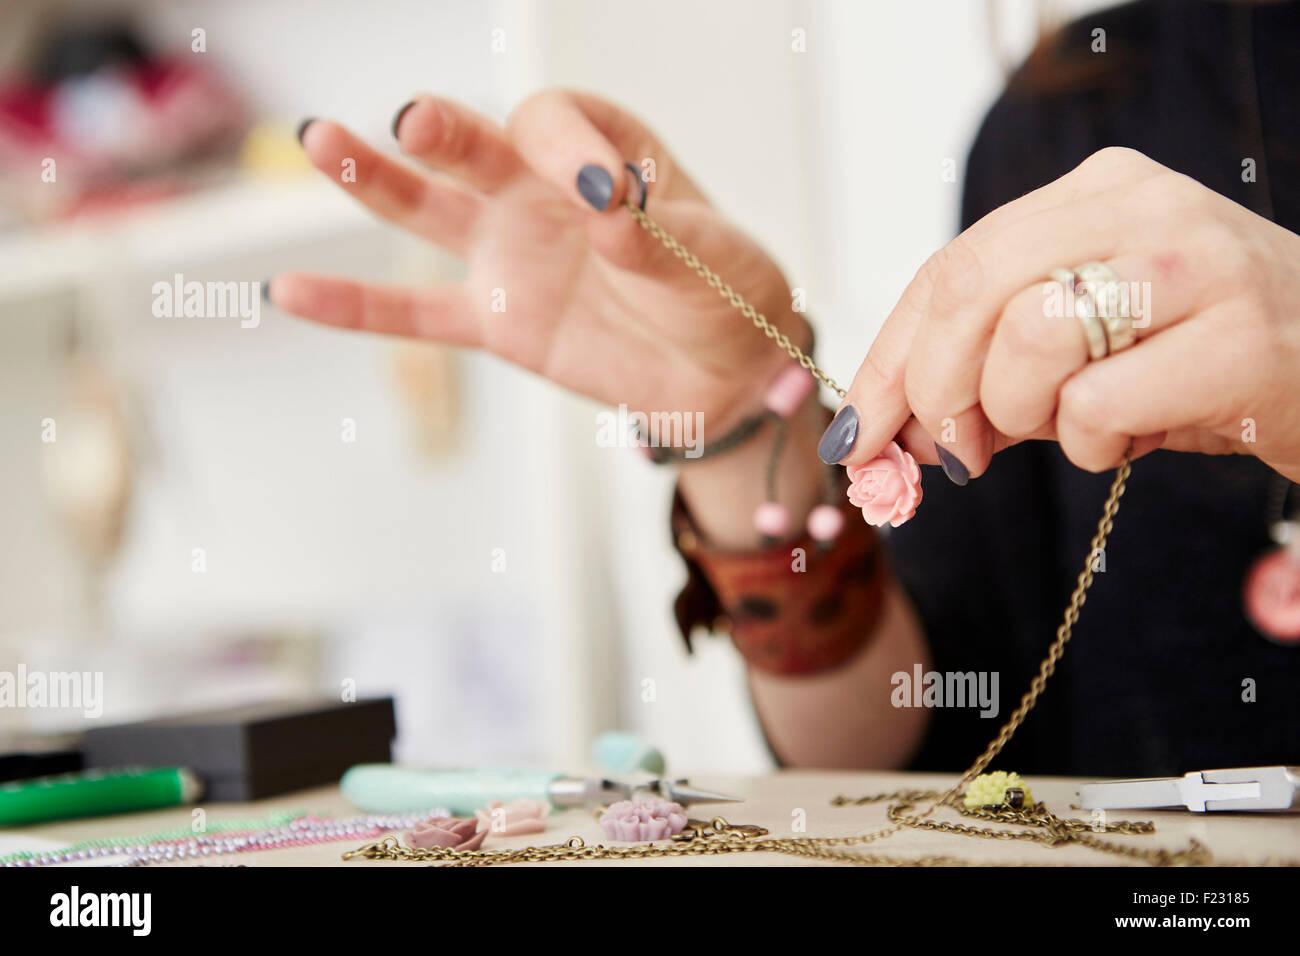 A woman seated at a workbench holding a gold chain with a small floral pendant, making jewellery. - Stock Image